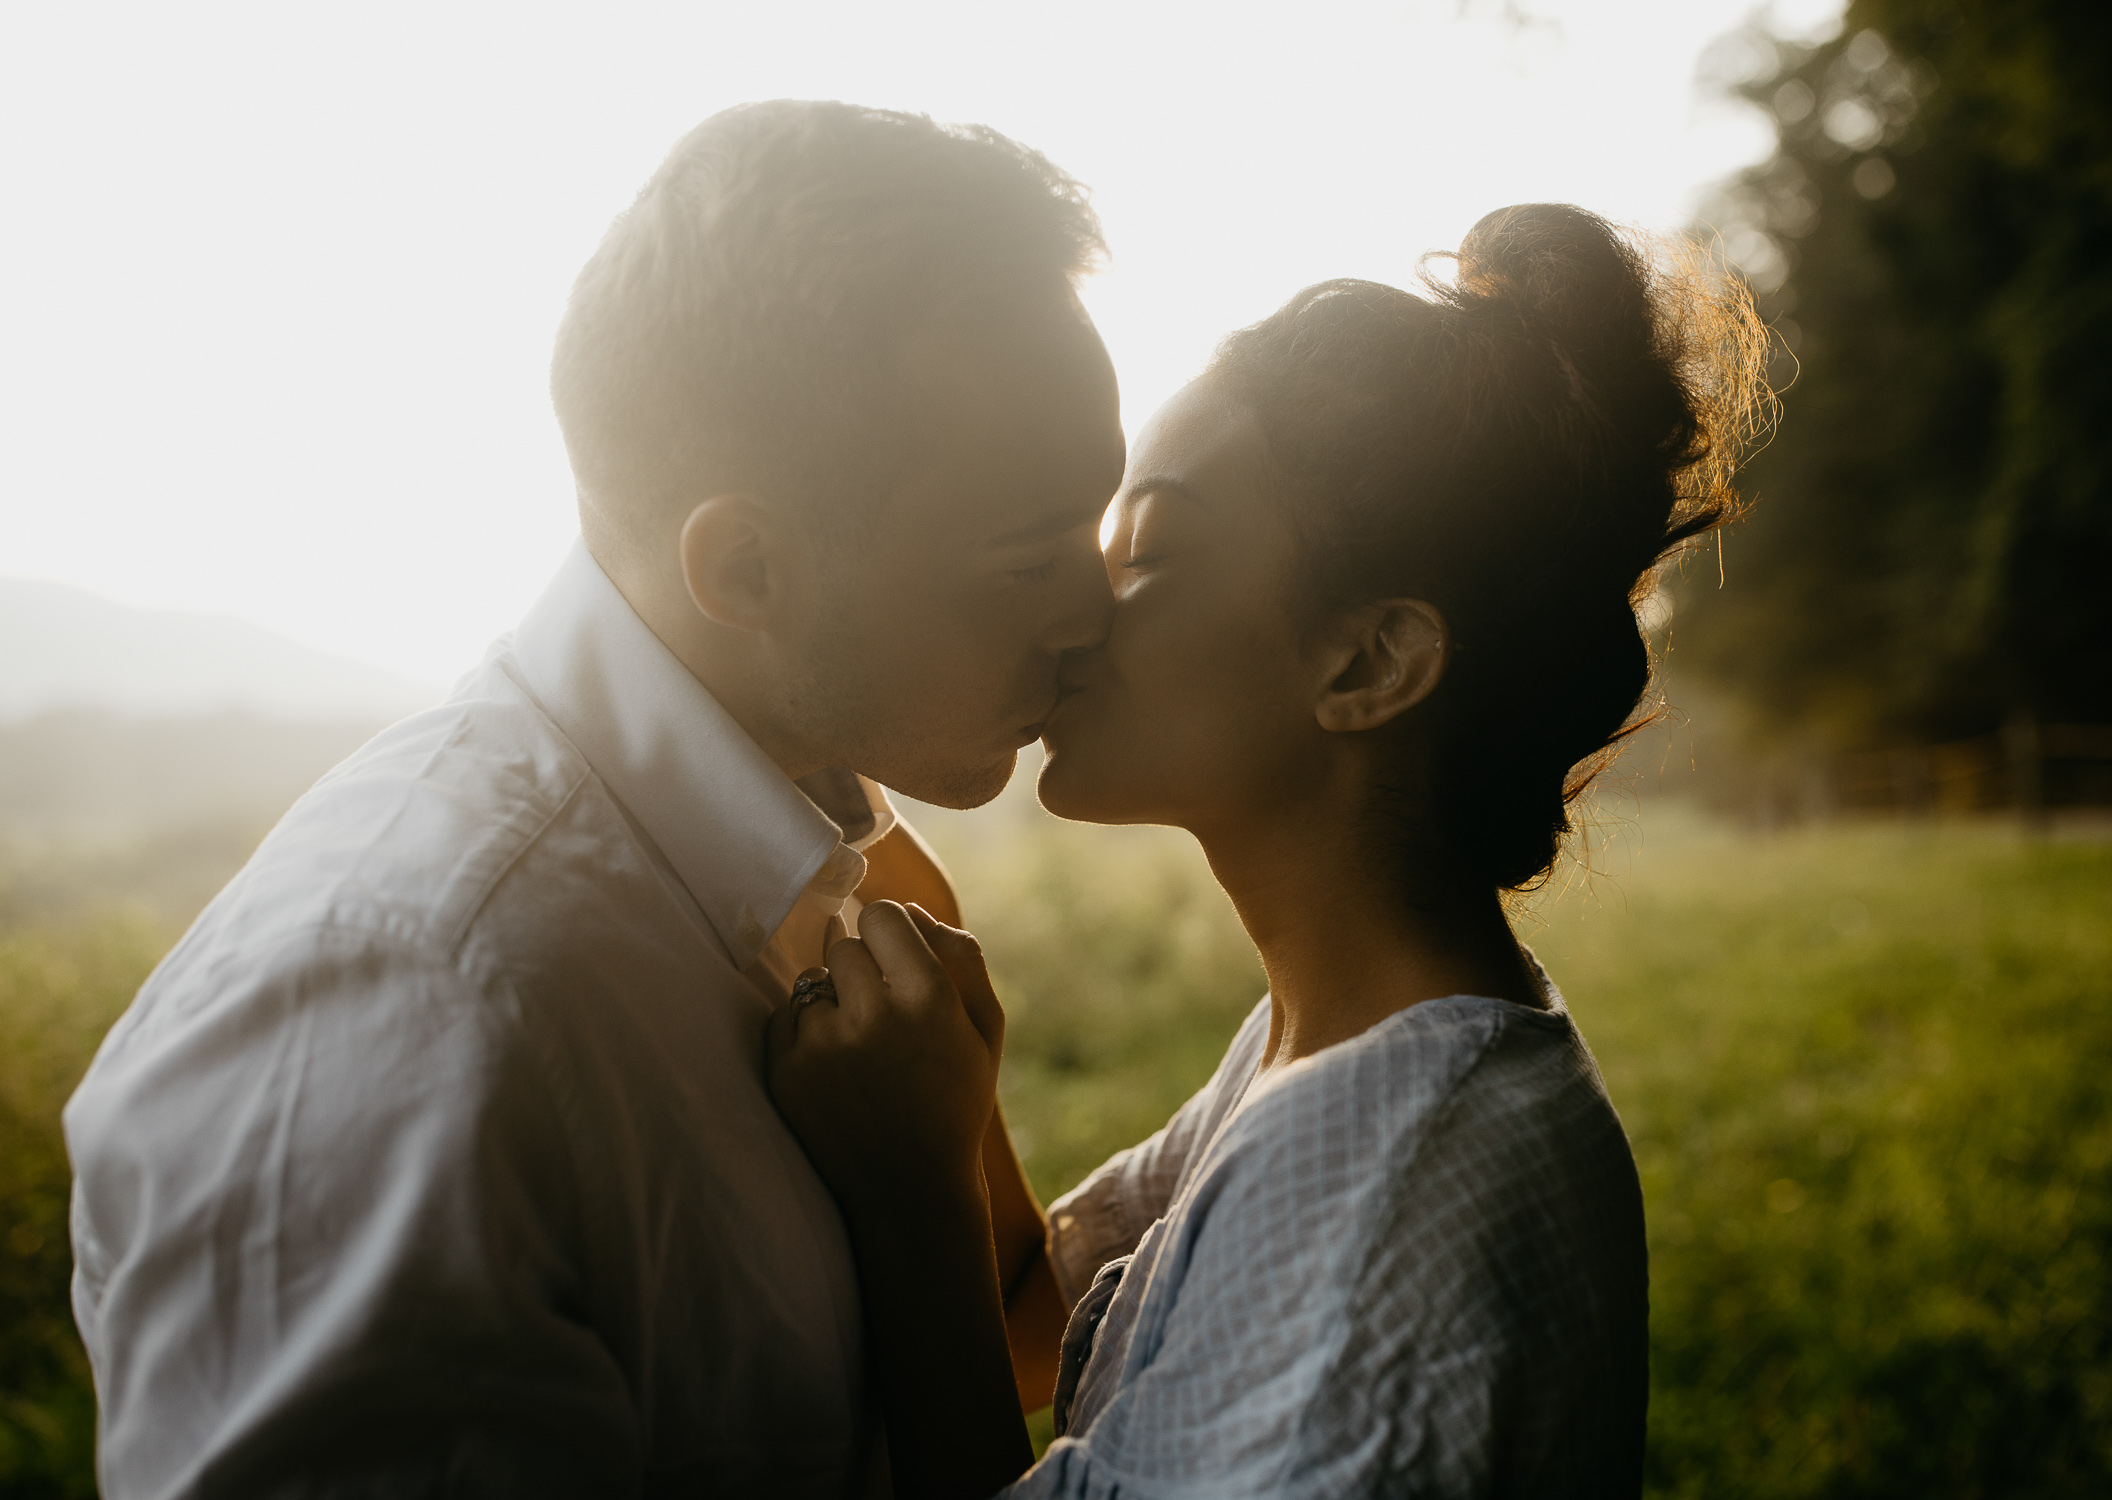 ariannamtorres and isaac engagement session at cades cove smoky mountains elopement-115.jpg